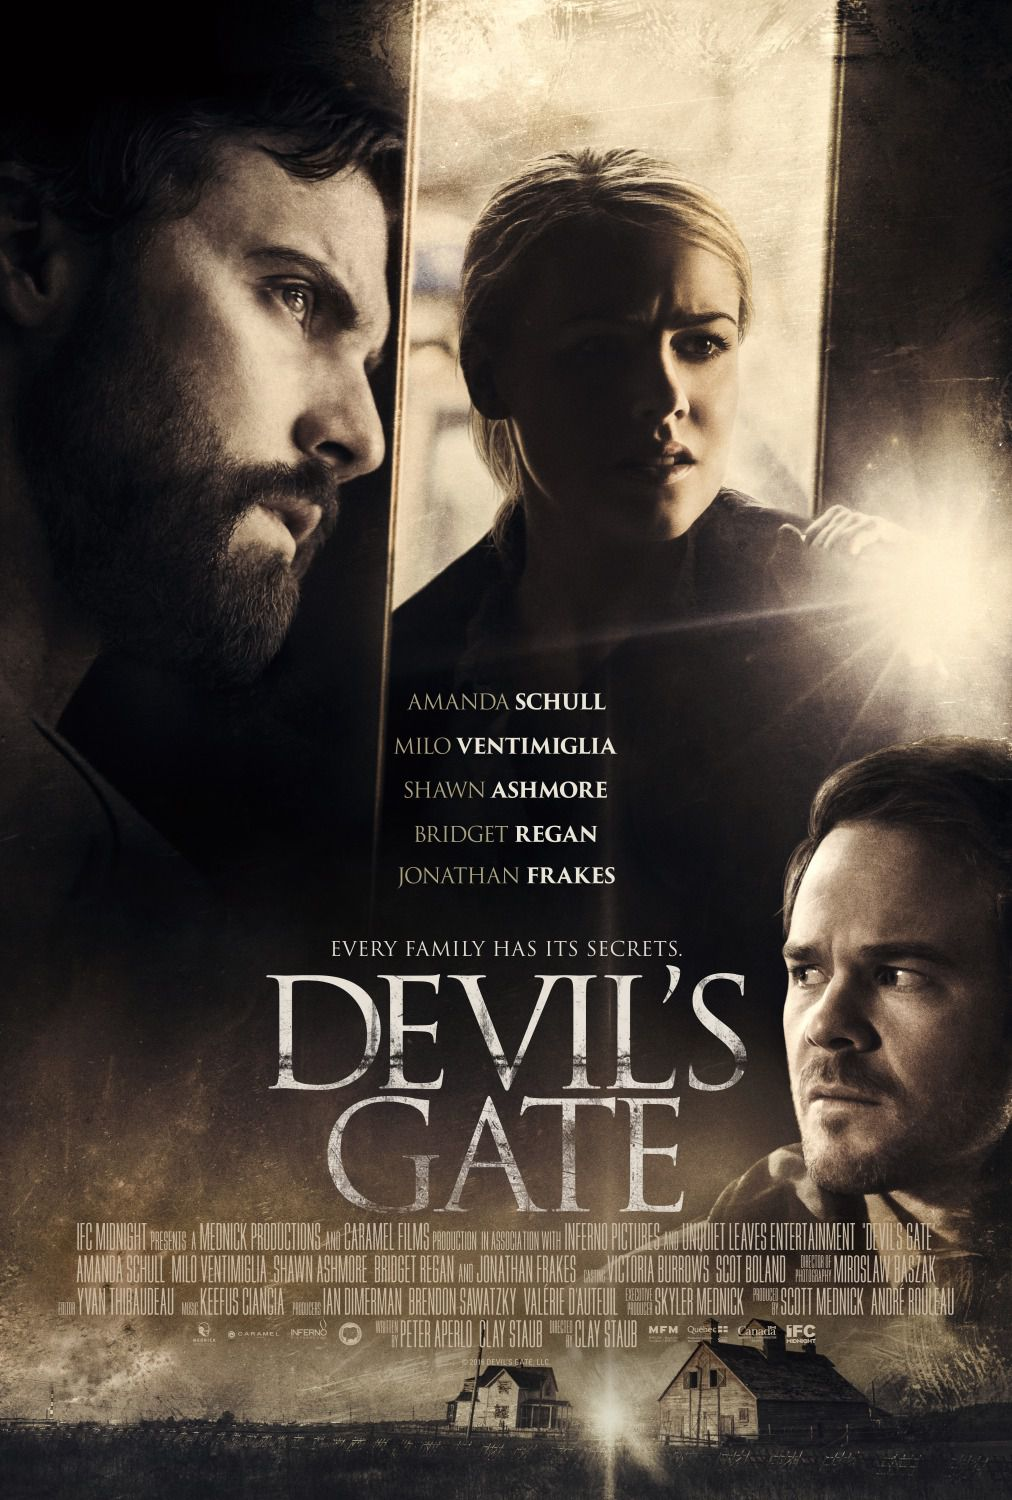 Devil's Gate (2018) by Clay Staub - horror thriller film poster